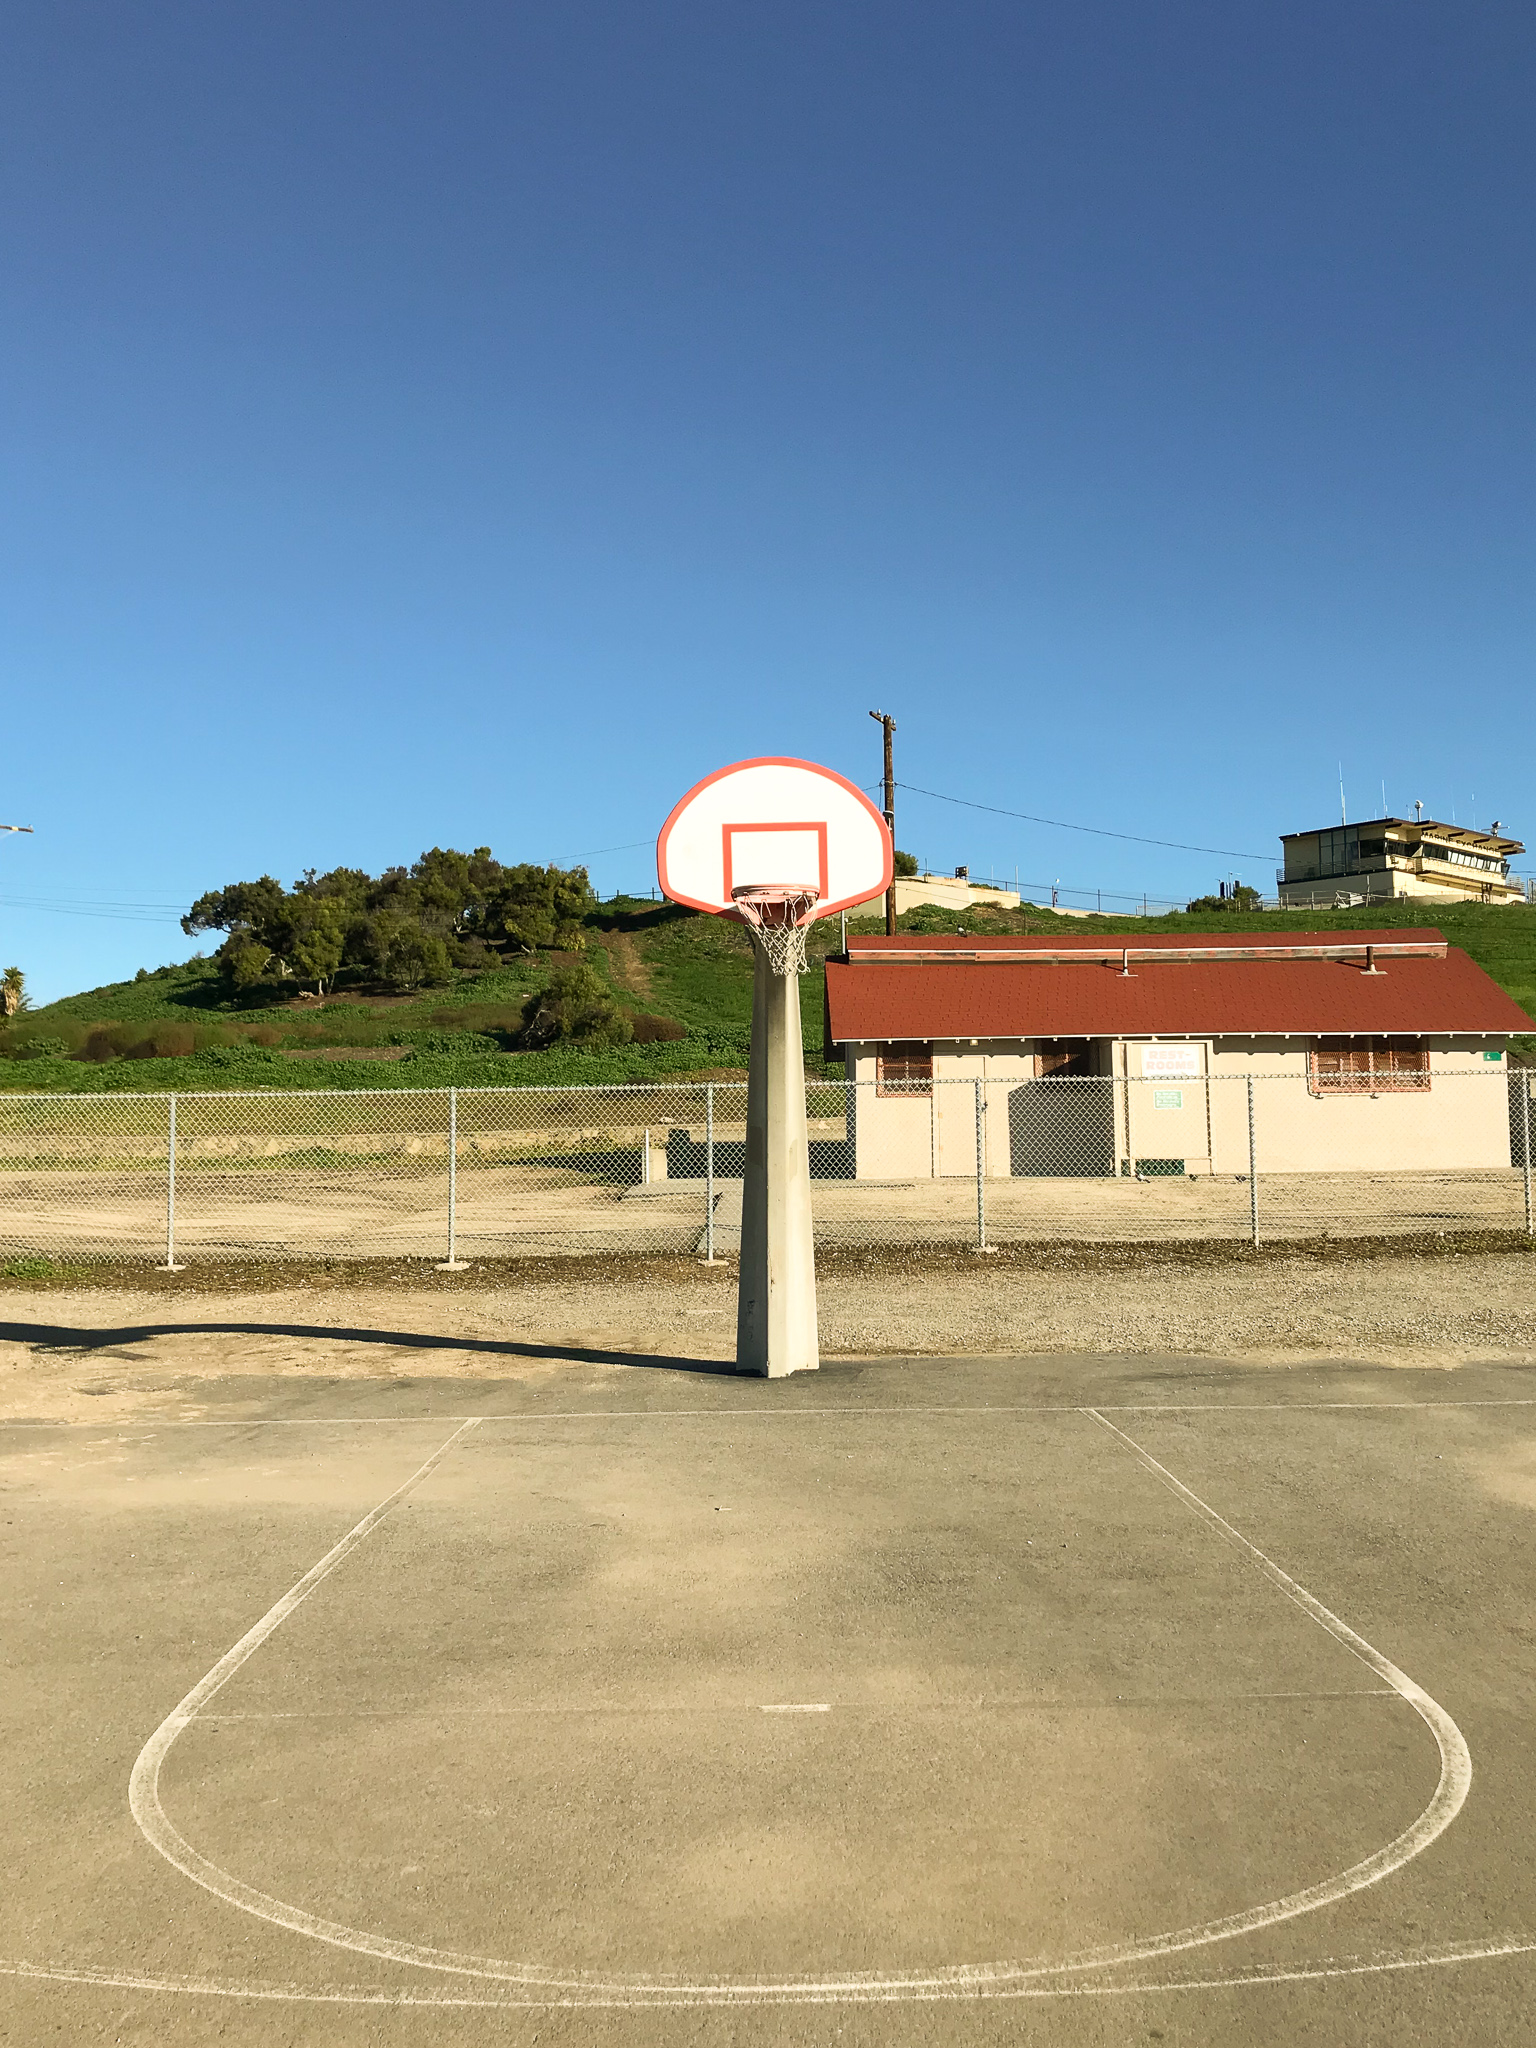 Interesting basketball courts in America